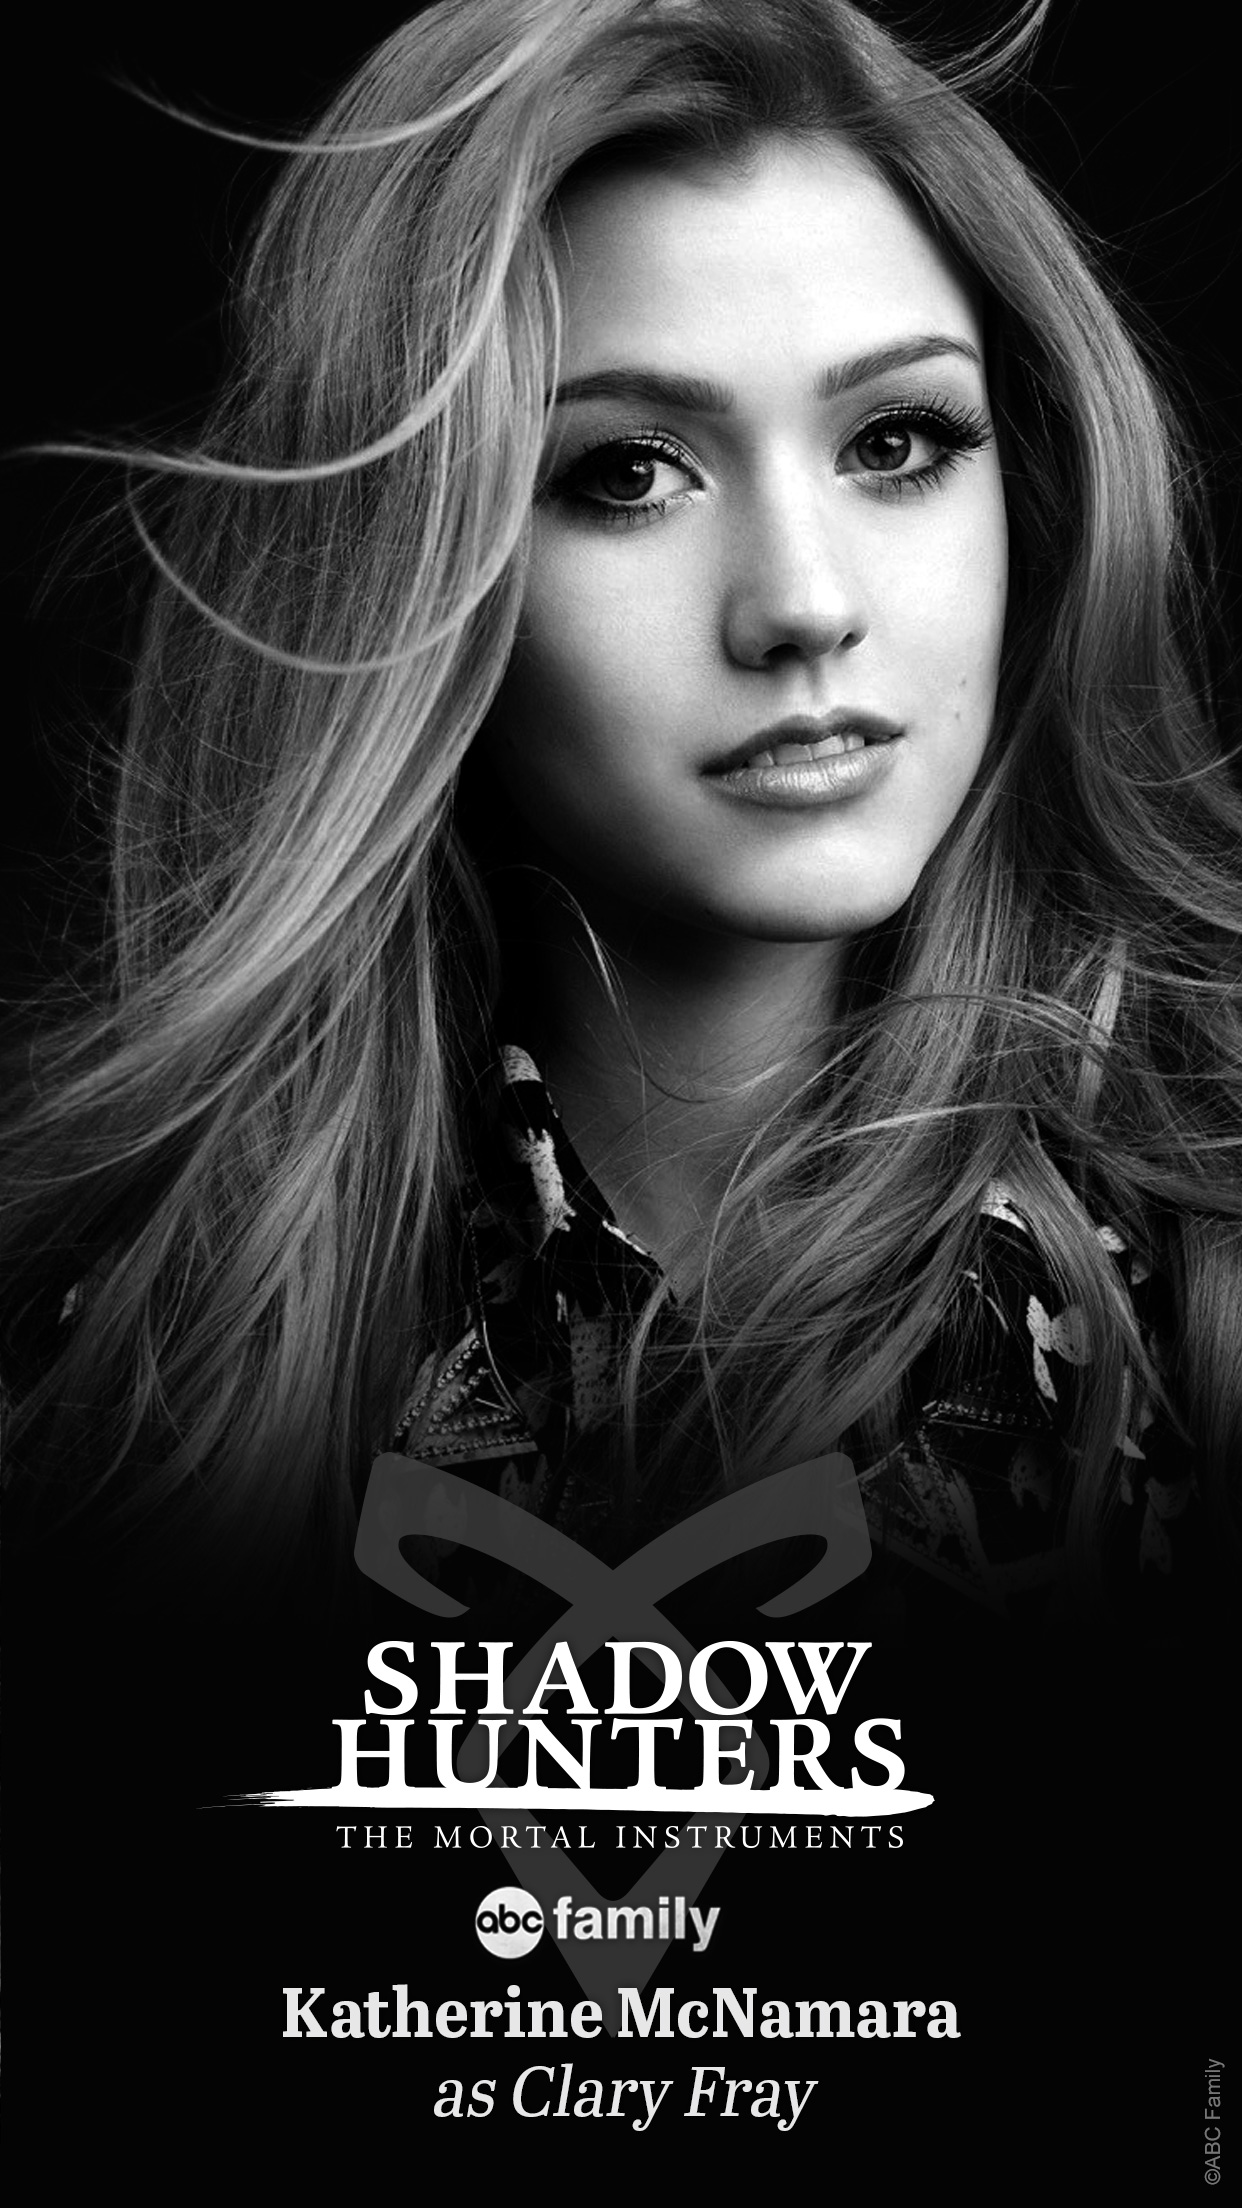 Shadowhunters - Shadowhunters Mobile Backgrounds to Rock Your World - 1003